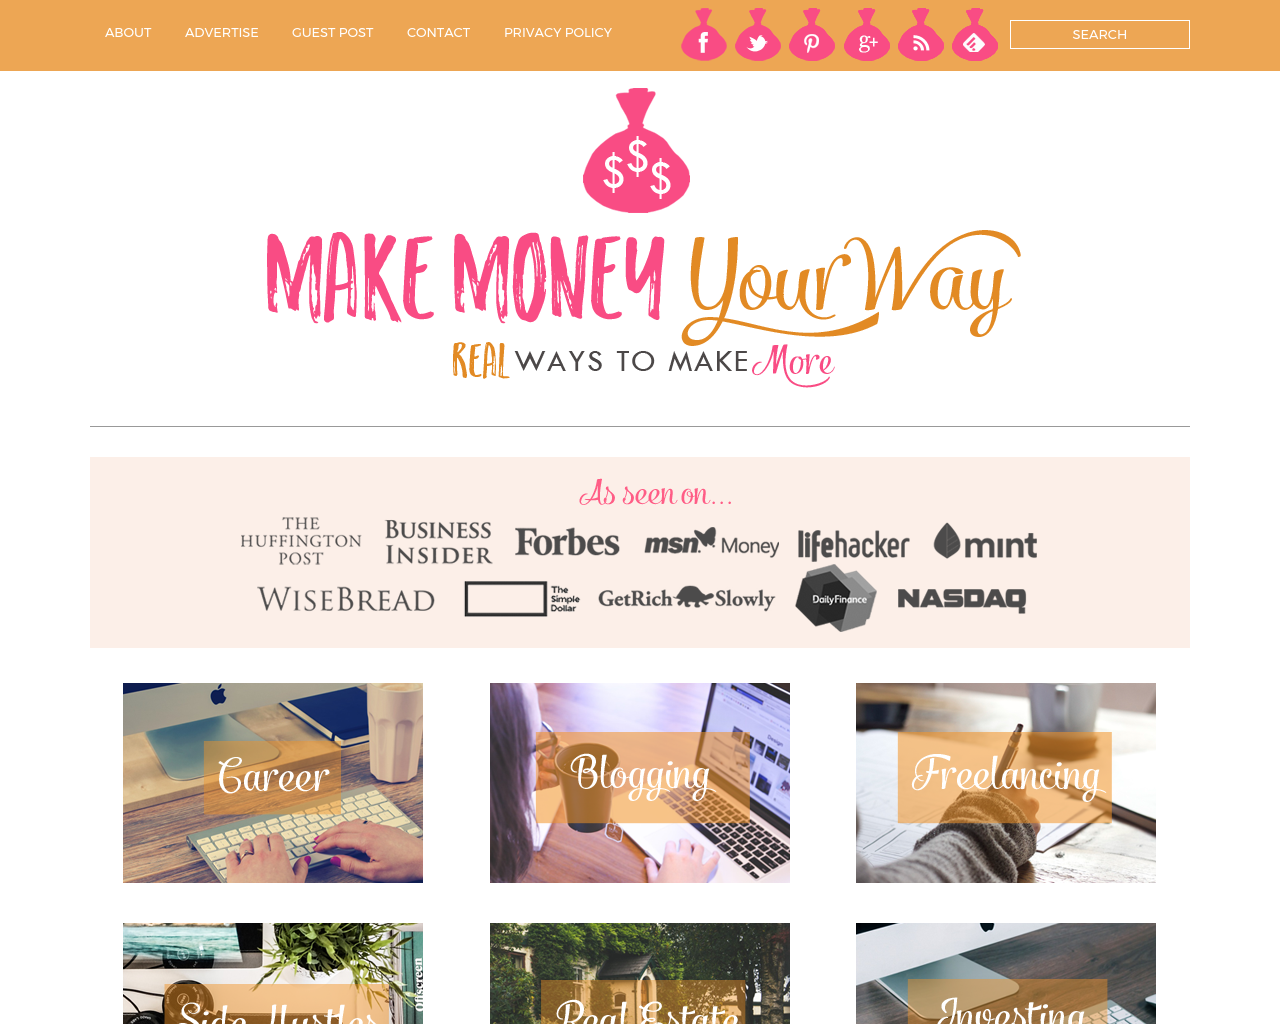 MakeMoneyYourWay-Advertising-Reviews-Pricing